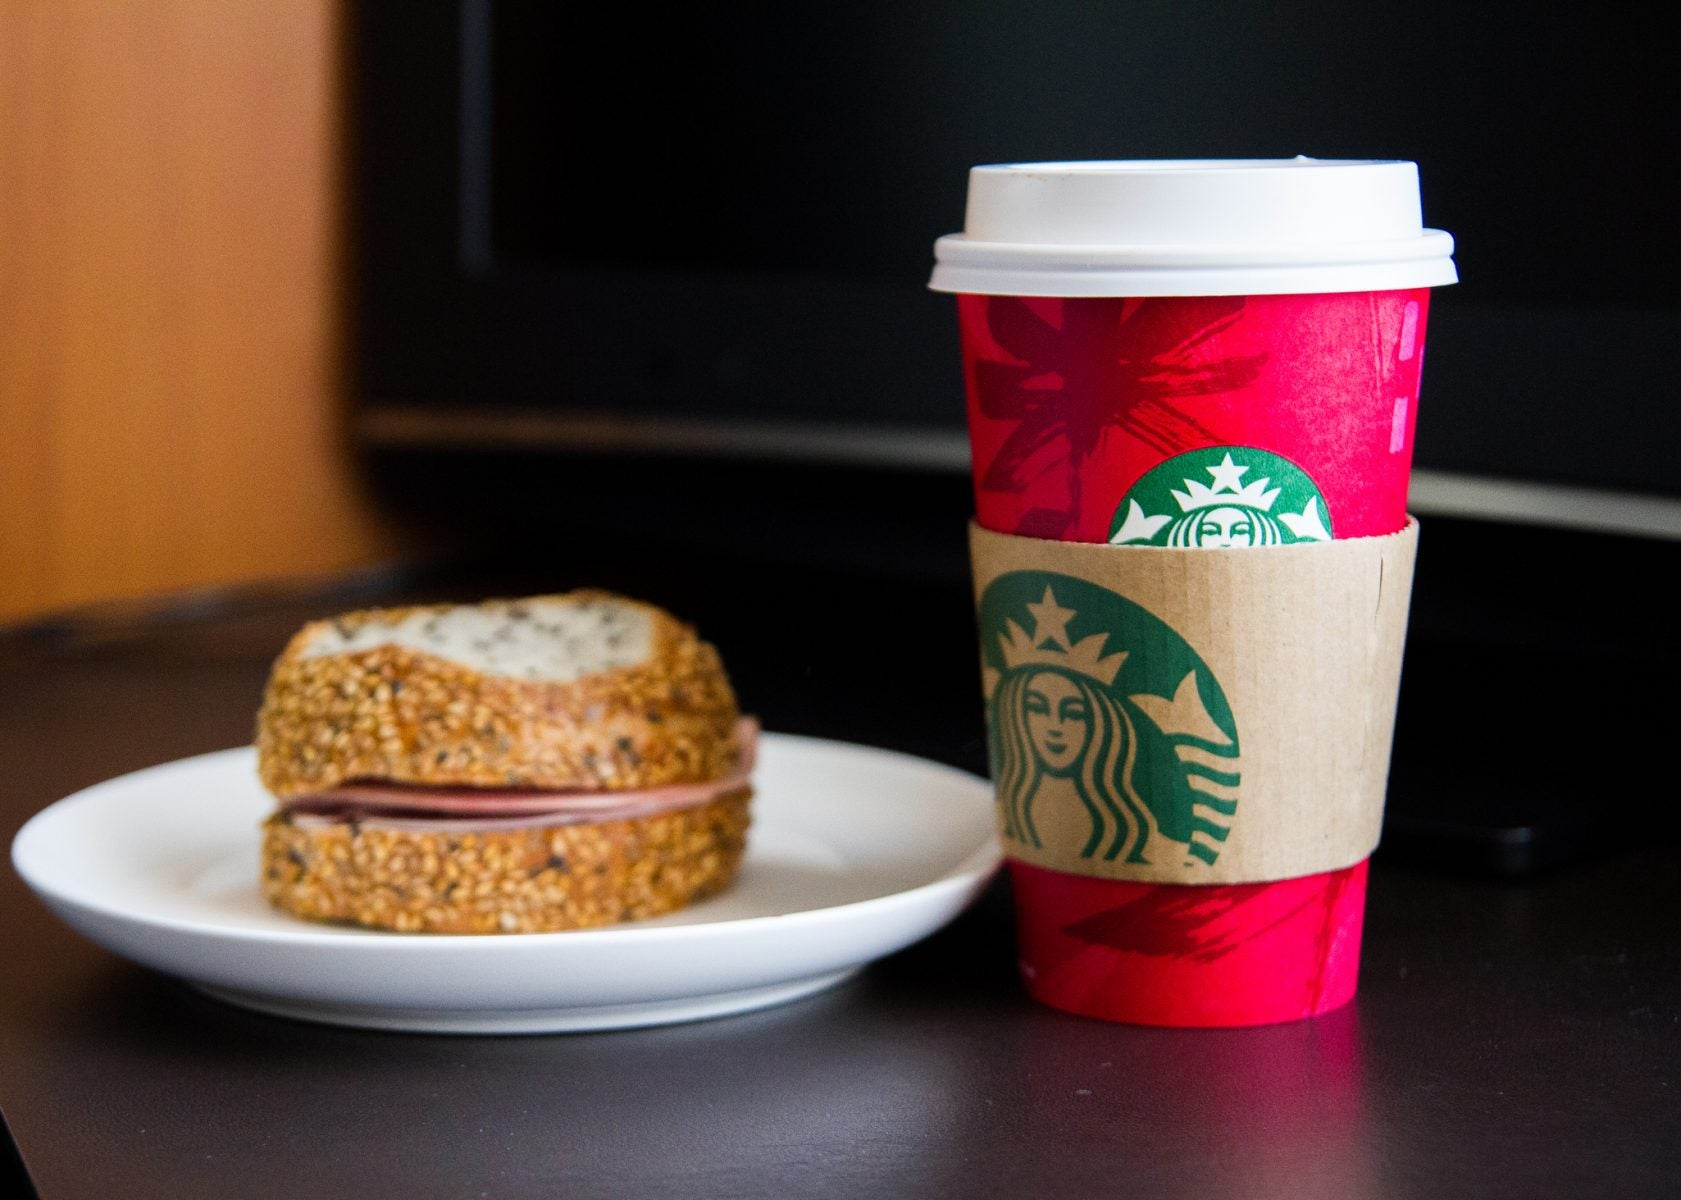 Free Coffee! Use the Chase App to Gift a $5 Starbucks Gift Card, Chase Will Send YOU a $5 Starbucks Gift Card